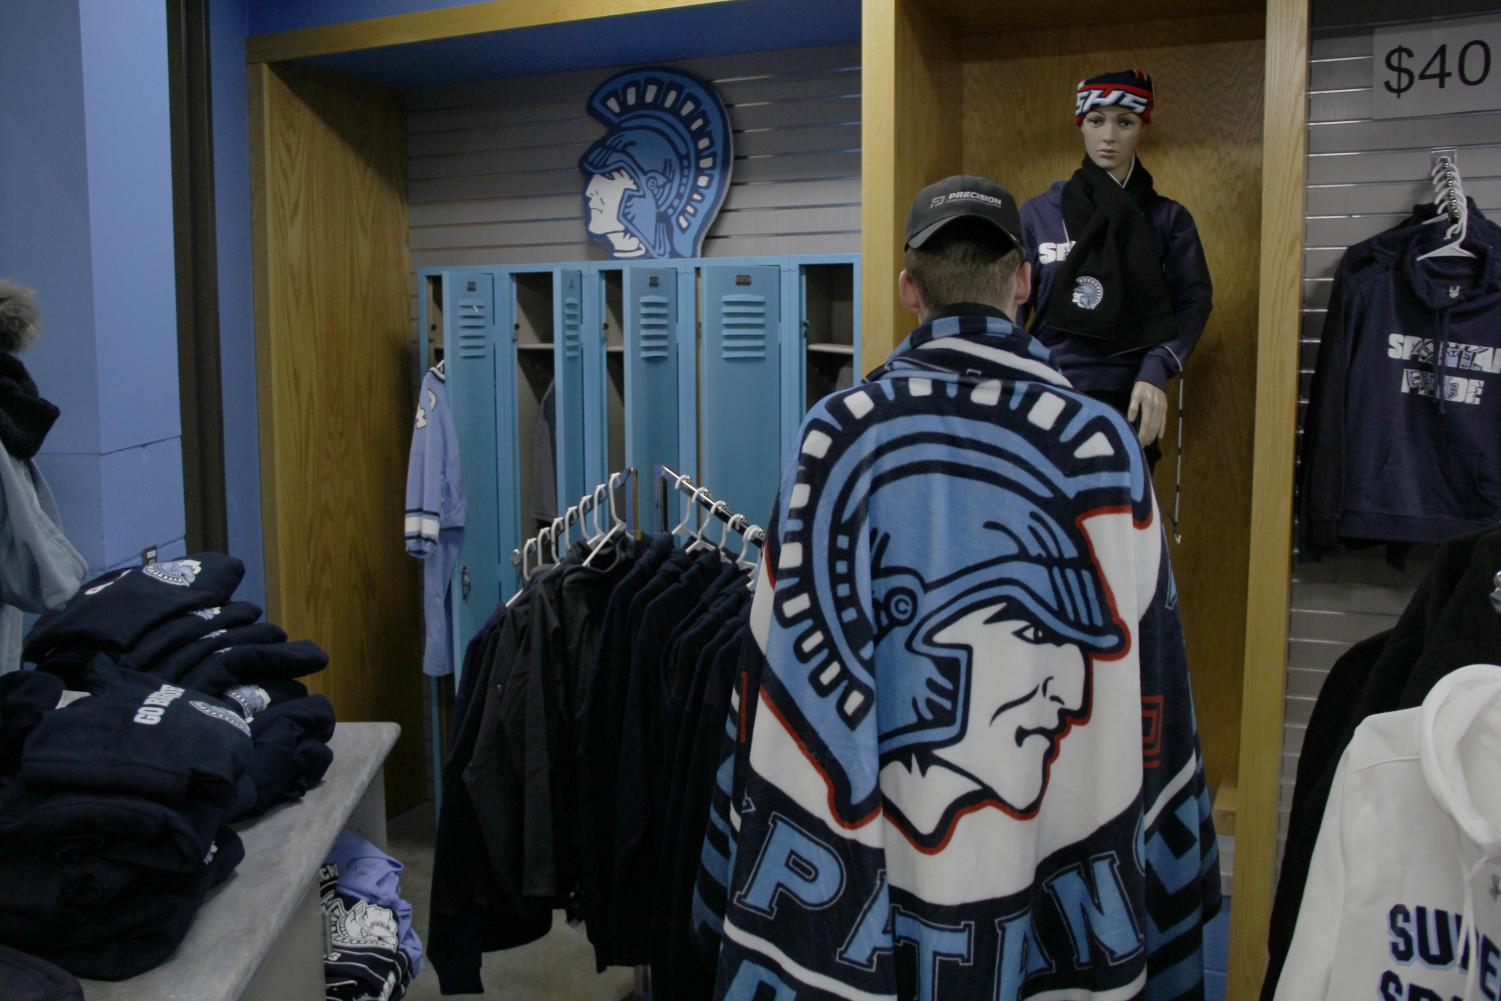 Senior Gunnar Hansen wraps up with the new Spartan blanket in the Spartan Shack Nov. 8.